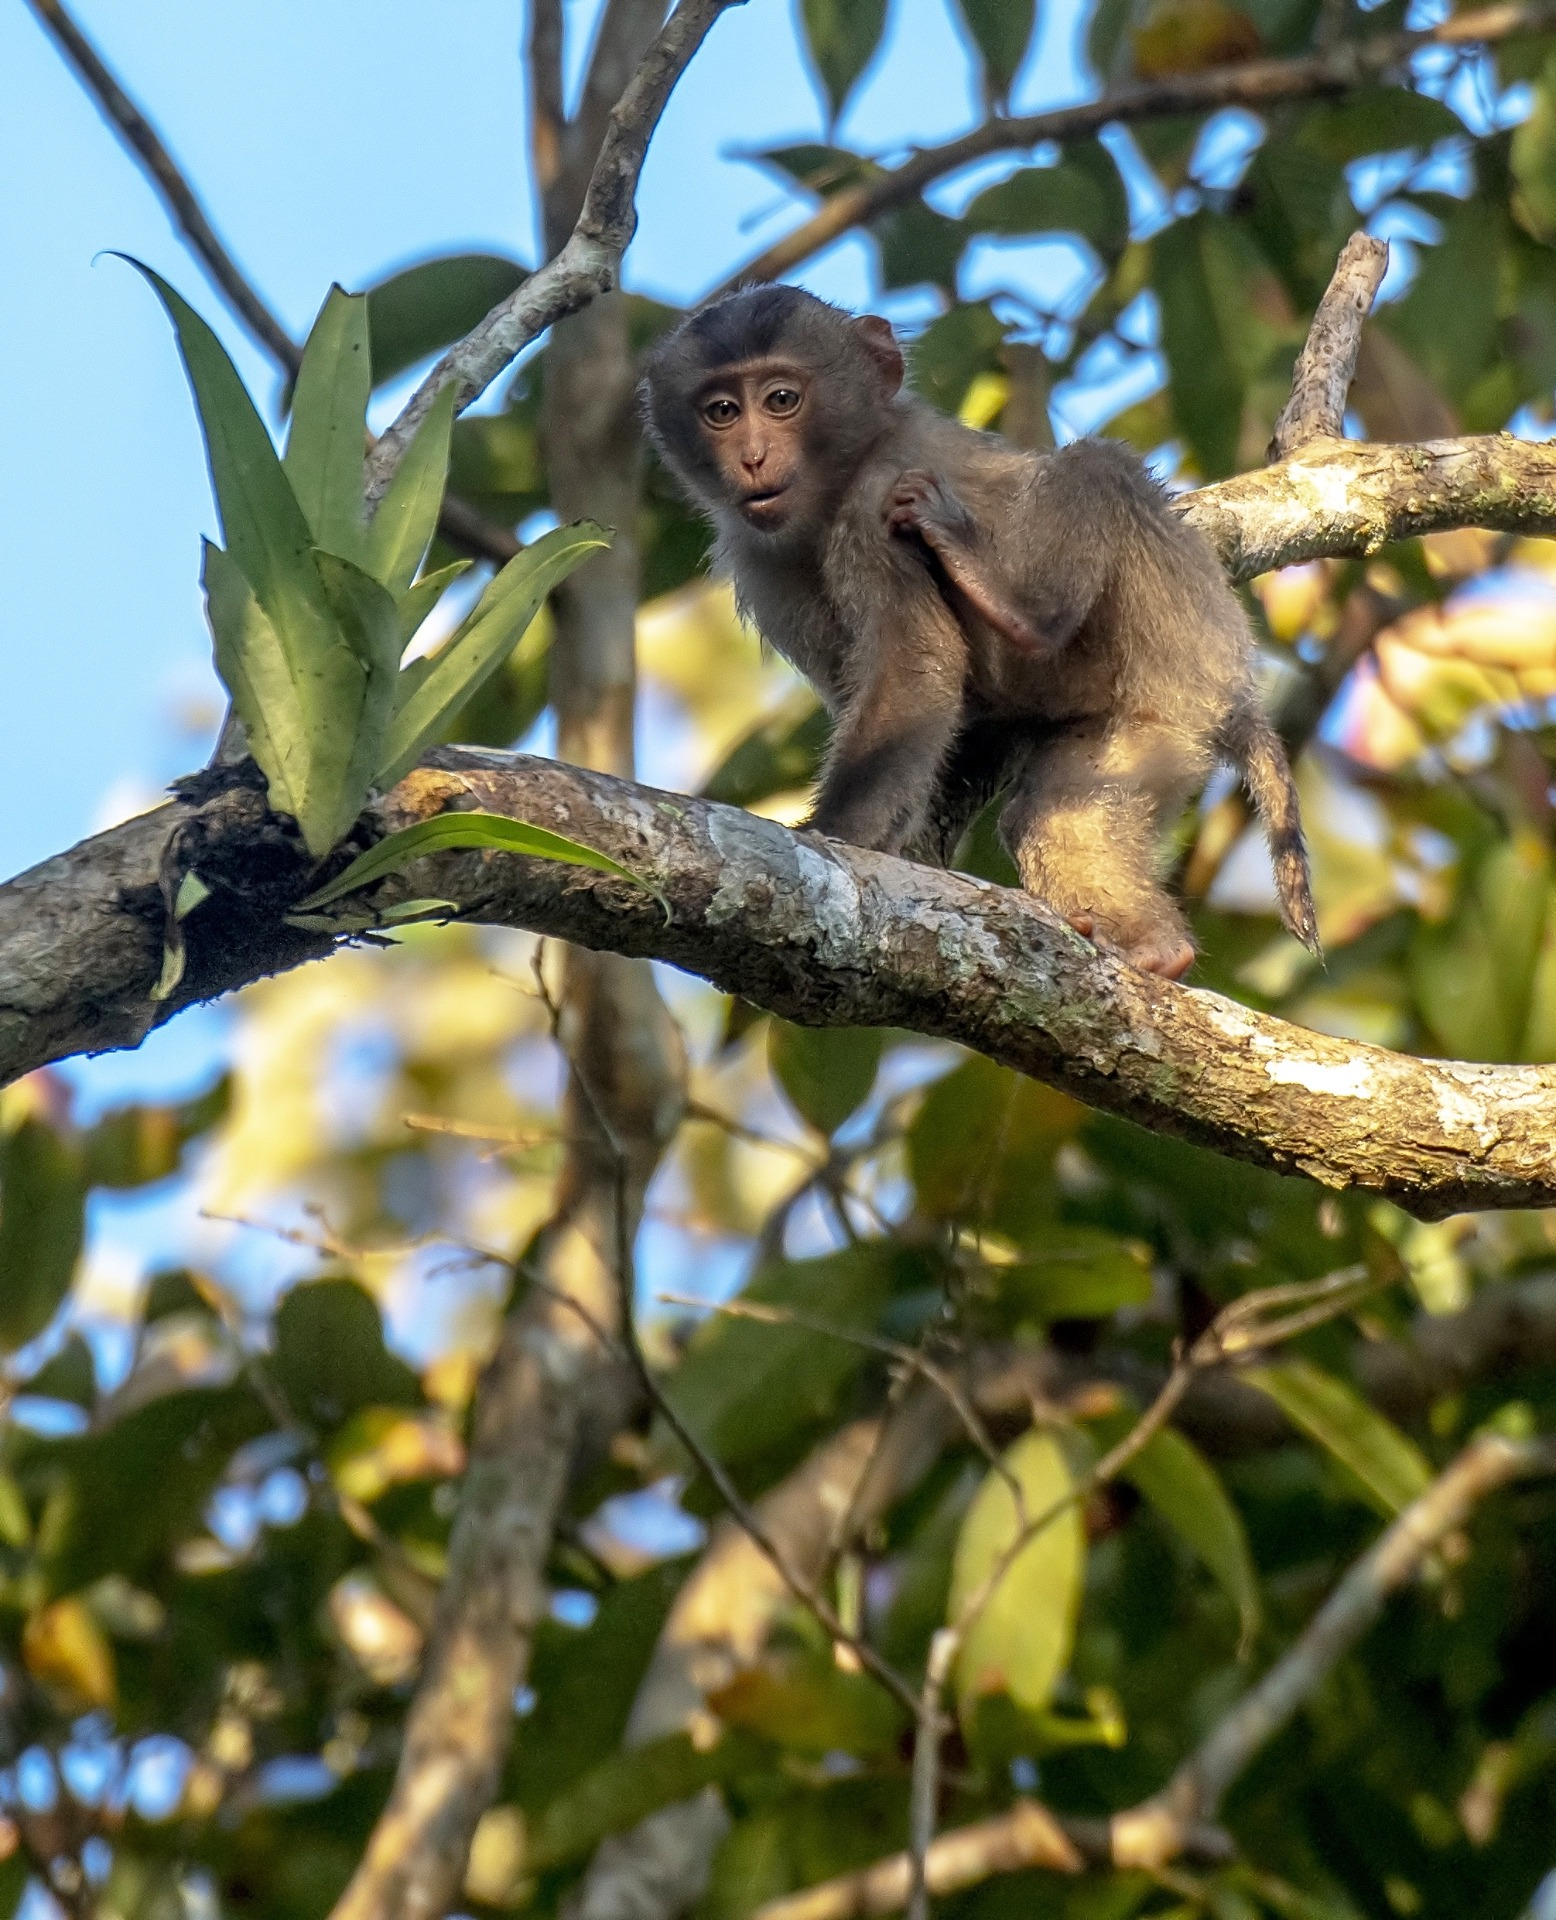 Infant macaques usually stay by their mother's side, but begin to explore their surrounds by the time they around a month old. Photo by: Udayan Borthakur